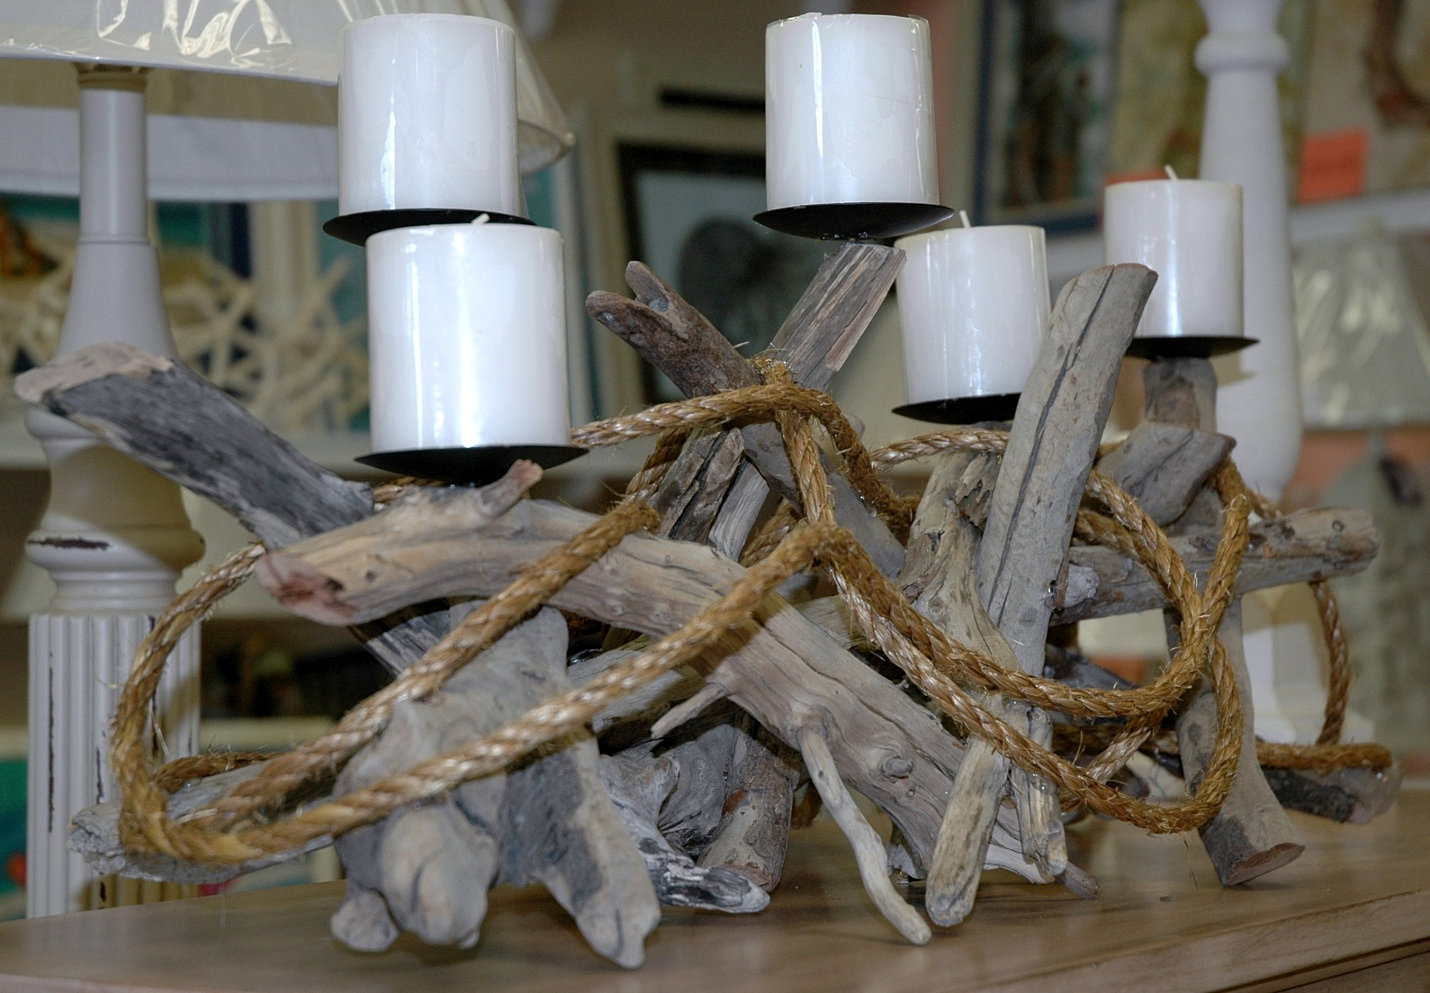 Island furniture atlantic beach nc rope and driftwood for Driftwood centerpiece